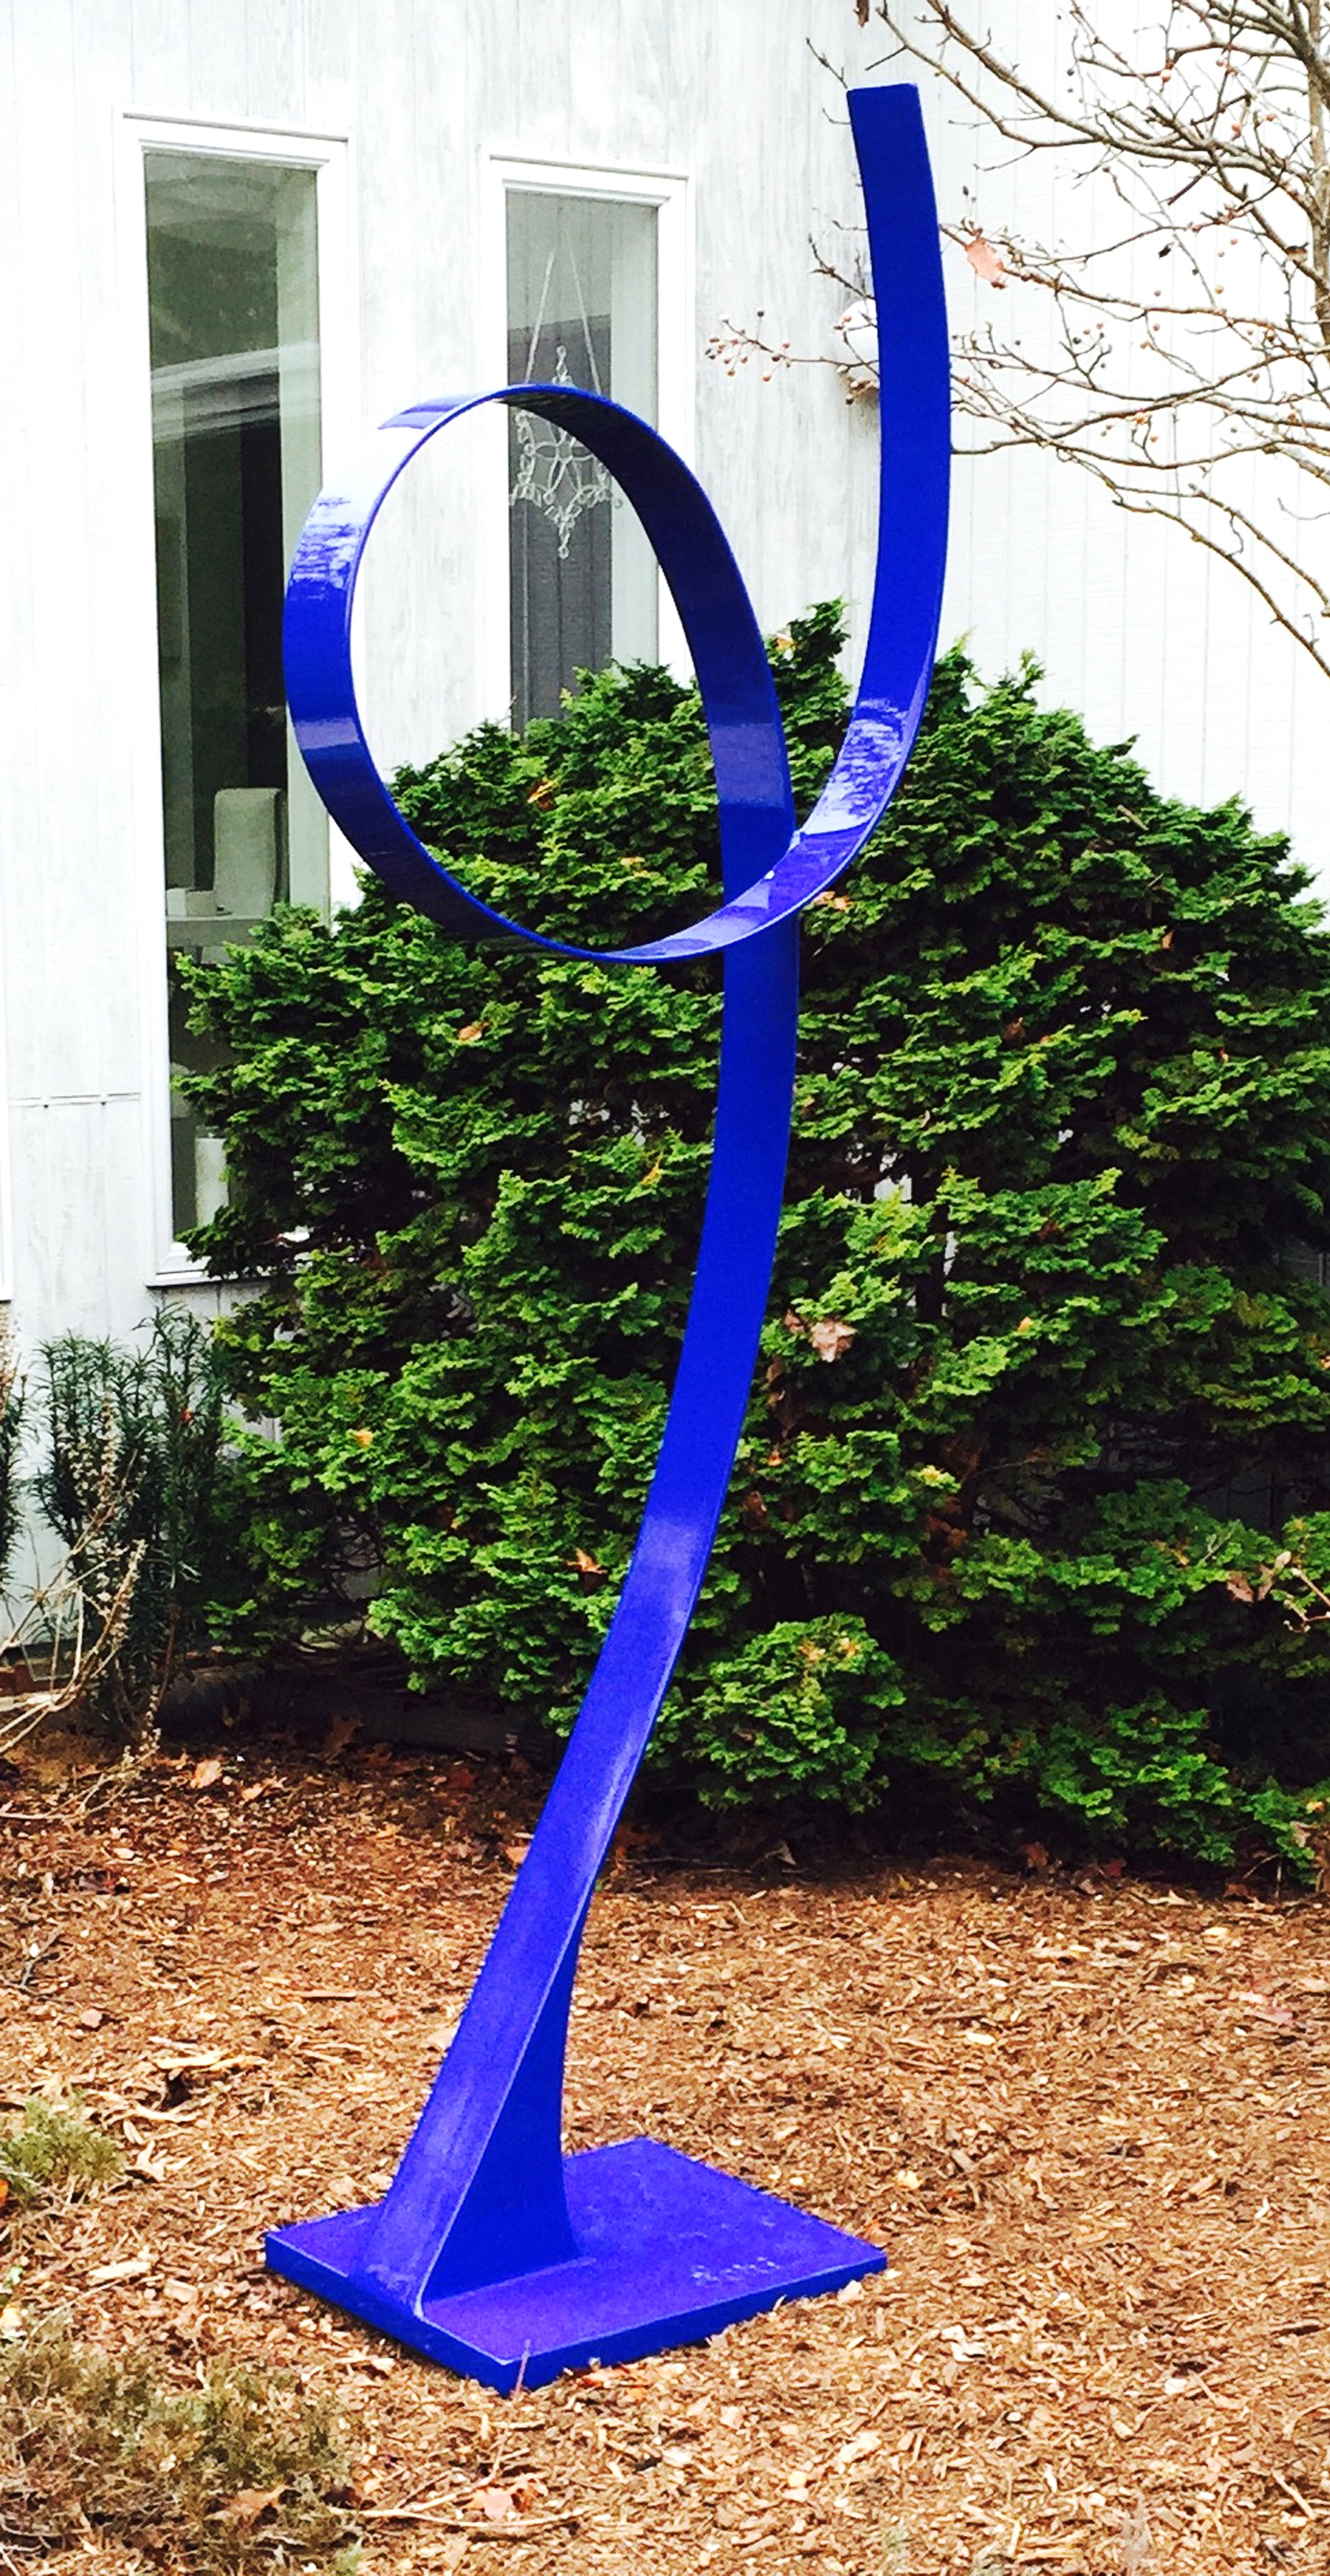 Blue Ribbon #2, 2015, painted, welded steel, 80 x 16 x 20 in, SOLD